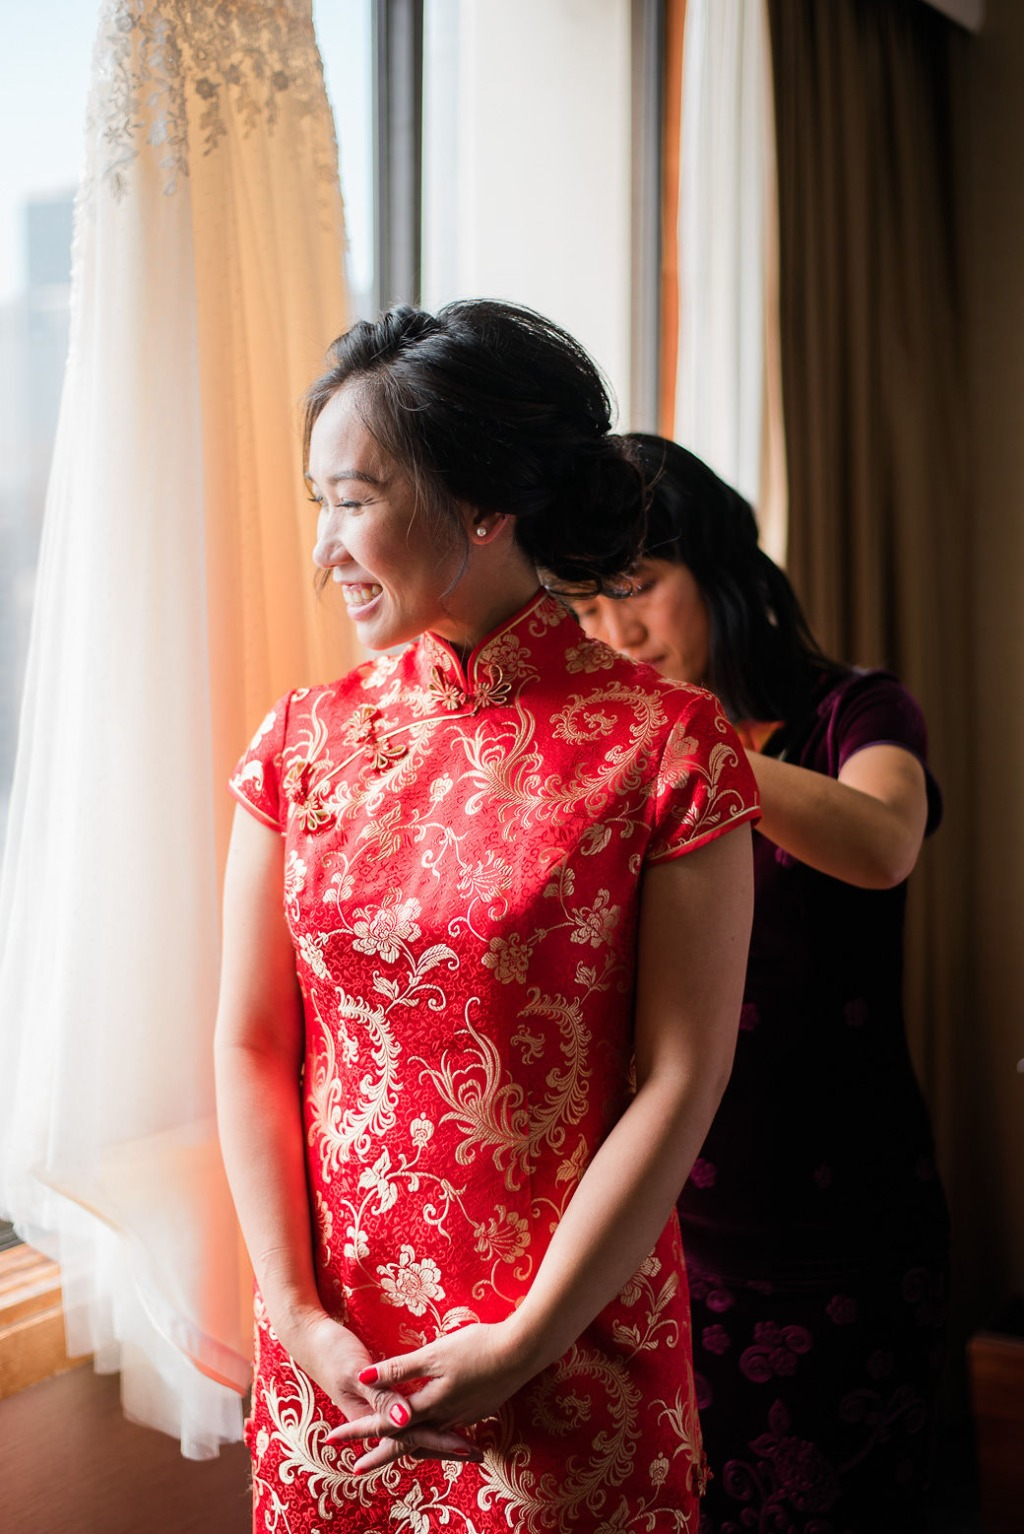 How gorgeous is our bride in her qipao? We can't stop admiring the beautiful, vibrant, red and gold brocade, with its gold details